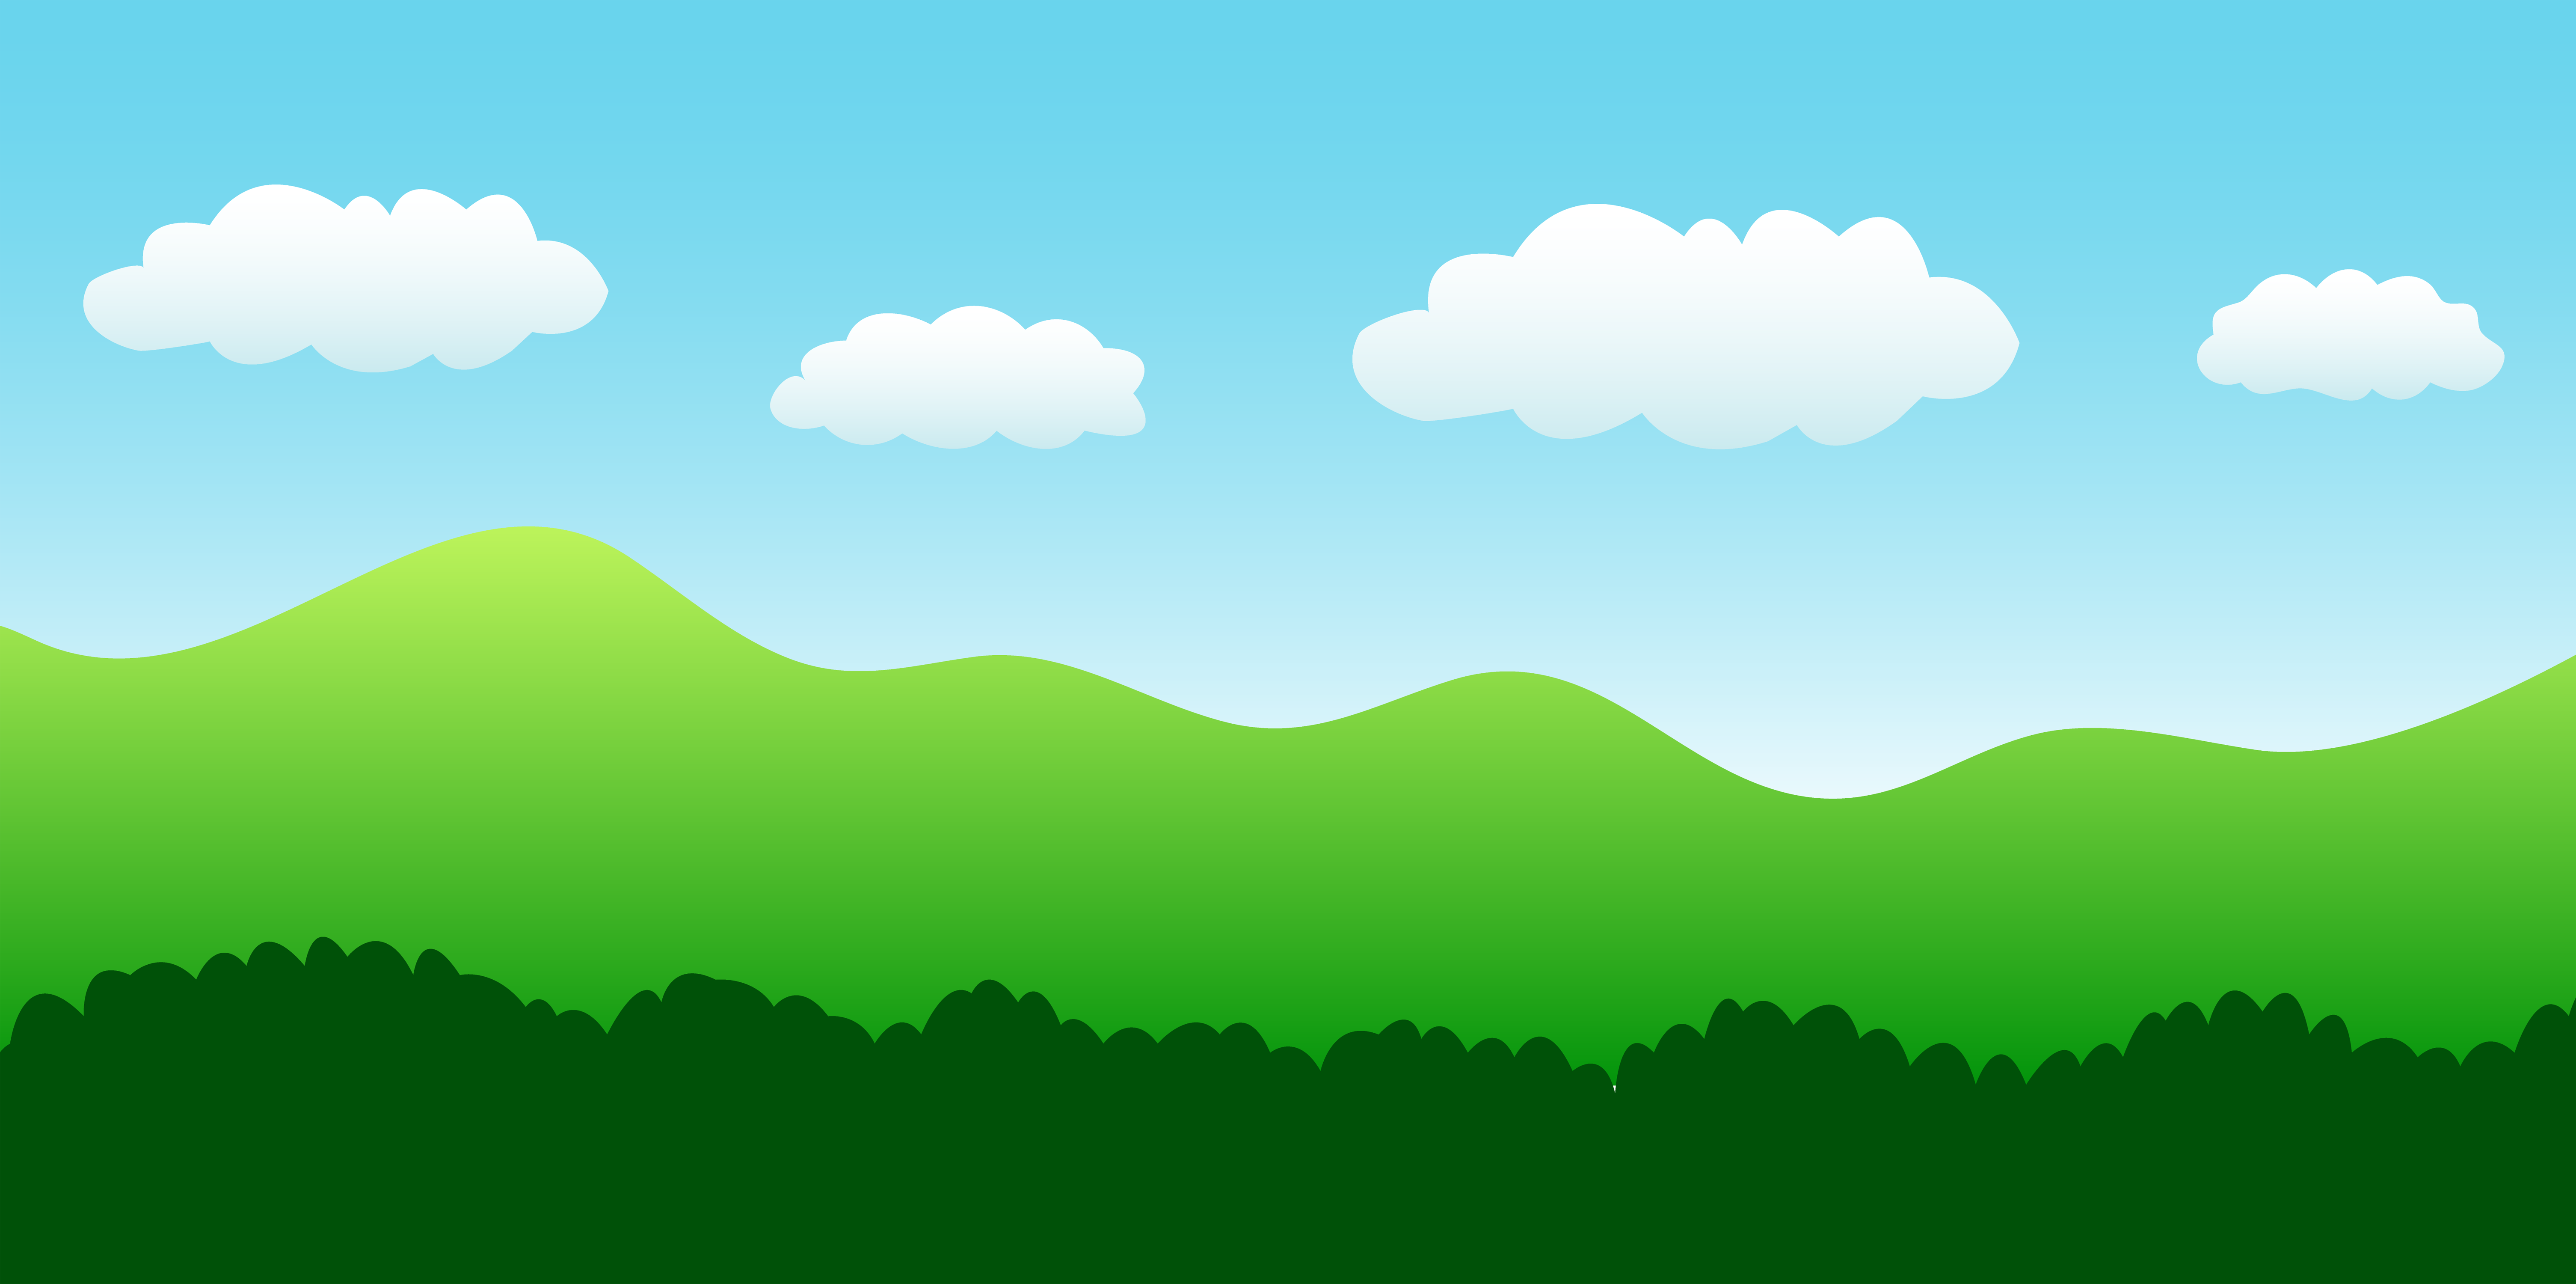 hills clipart cloudy sky